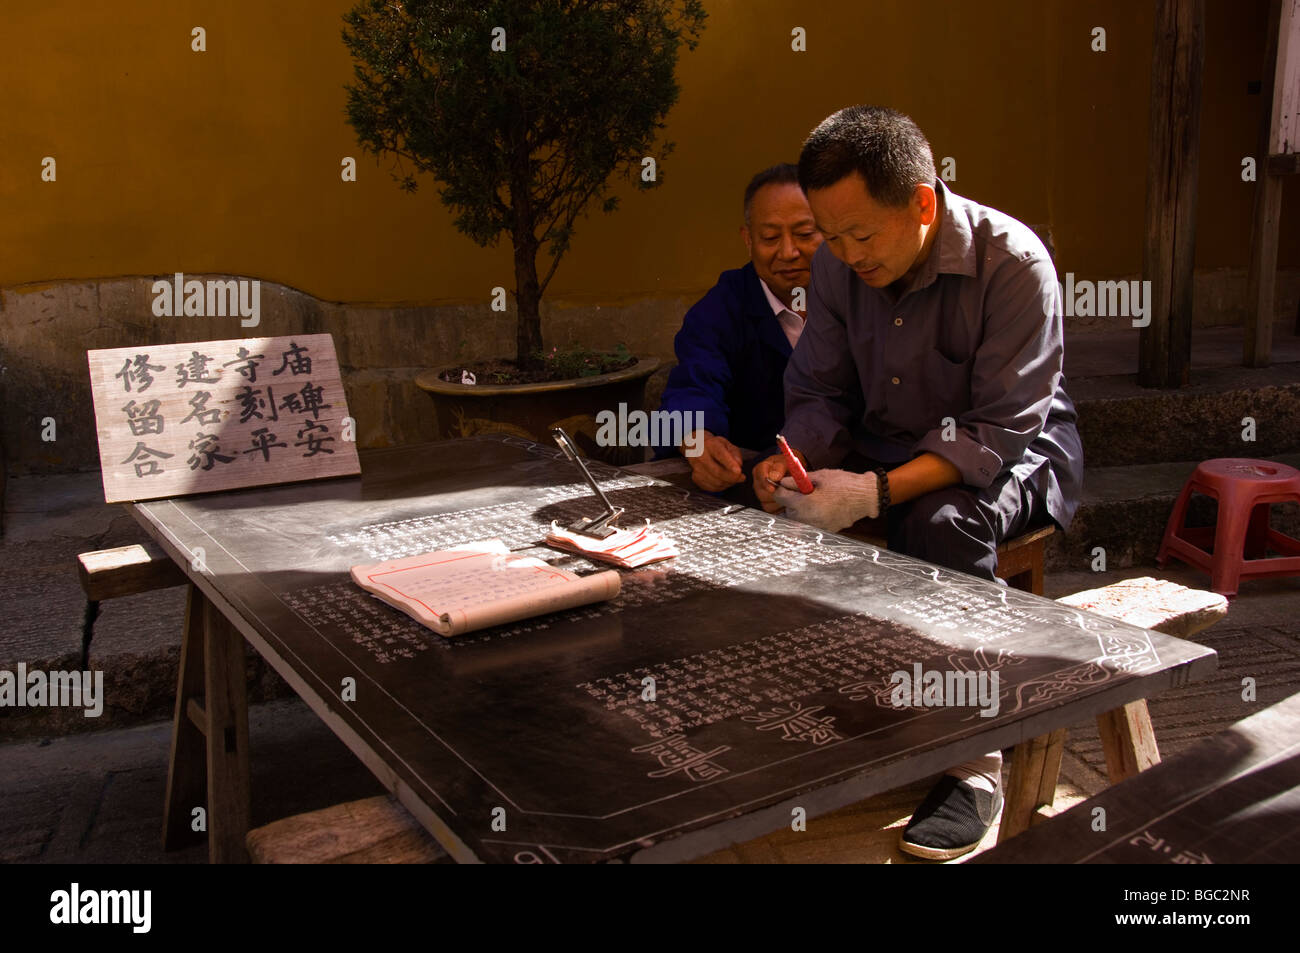 Man engraving the names of contributors of the Zhiyuan temple on a stone tablet. Jiuhua Shan. Anhui province, China. - Stock Image